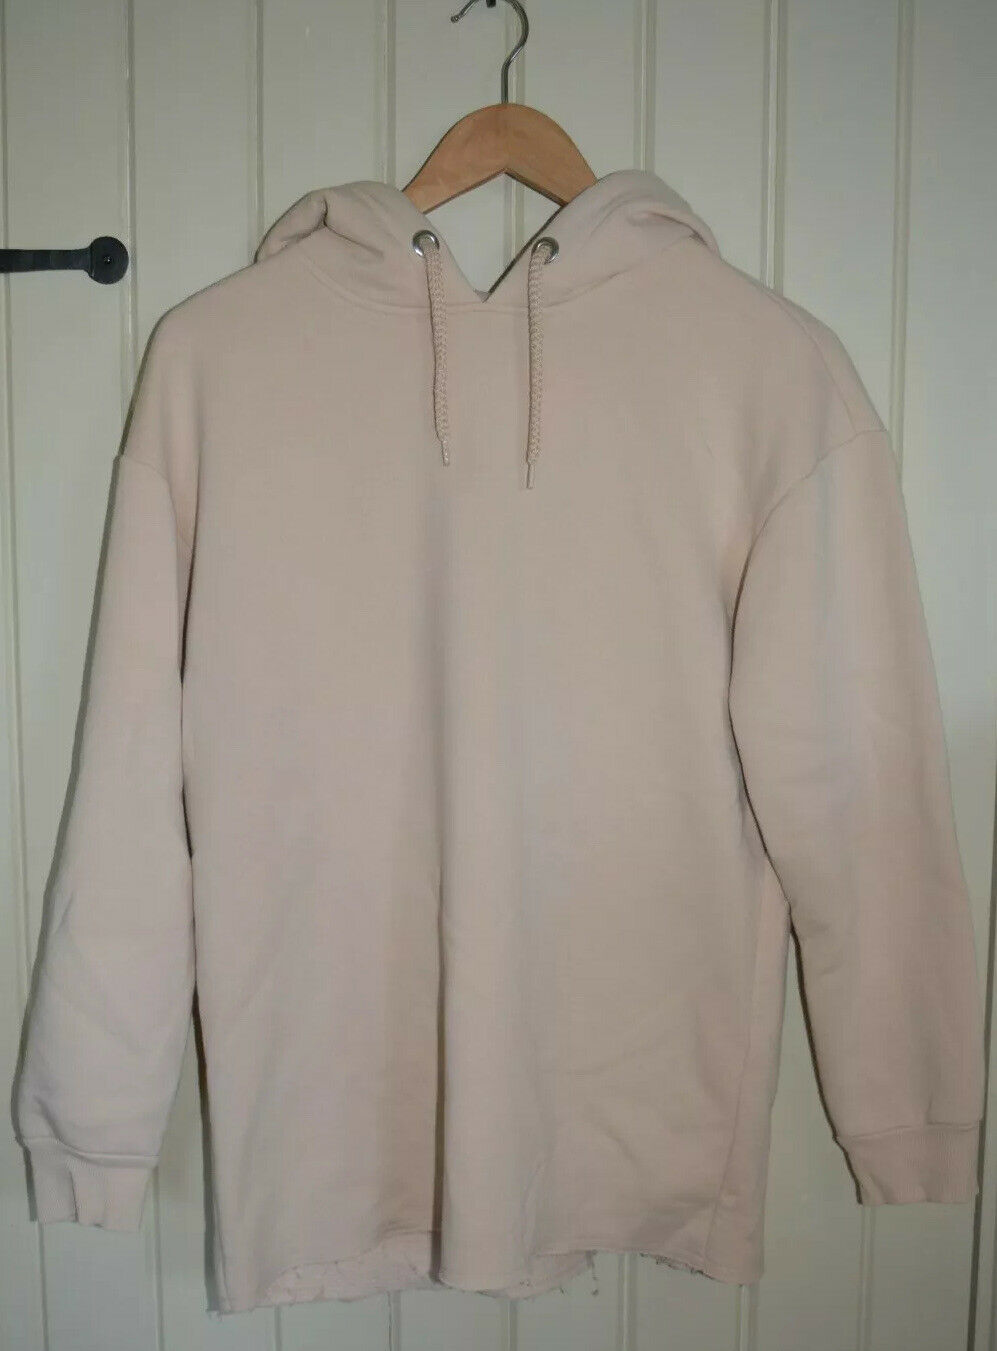 TOPSHOP petite hoodie size 6. Great Condition.